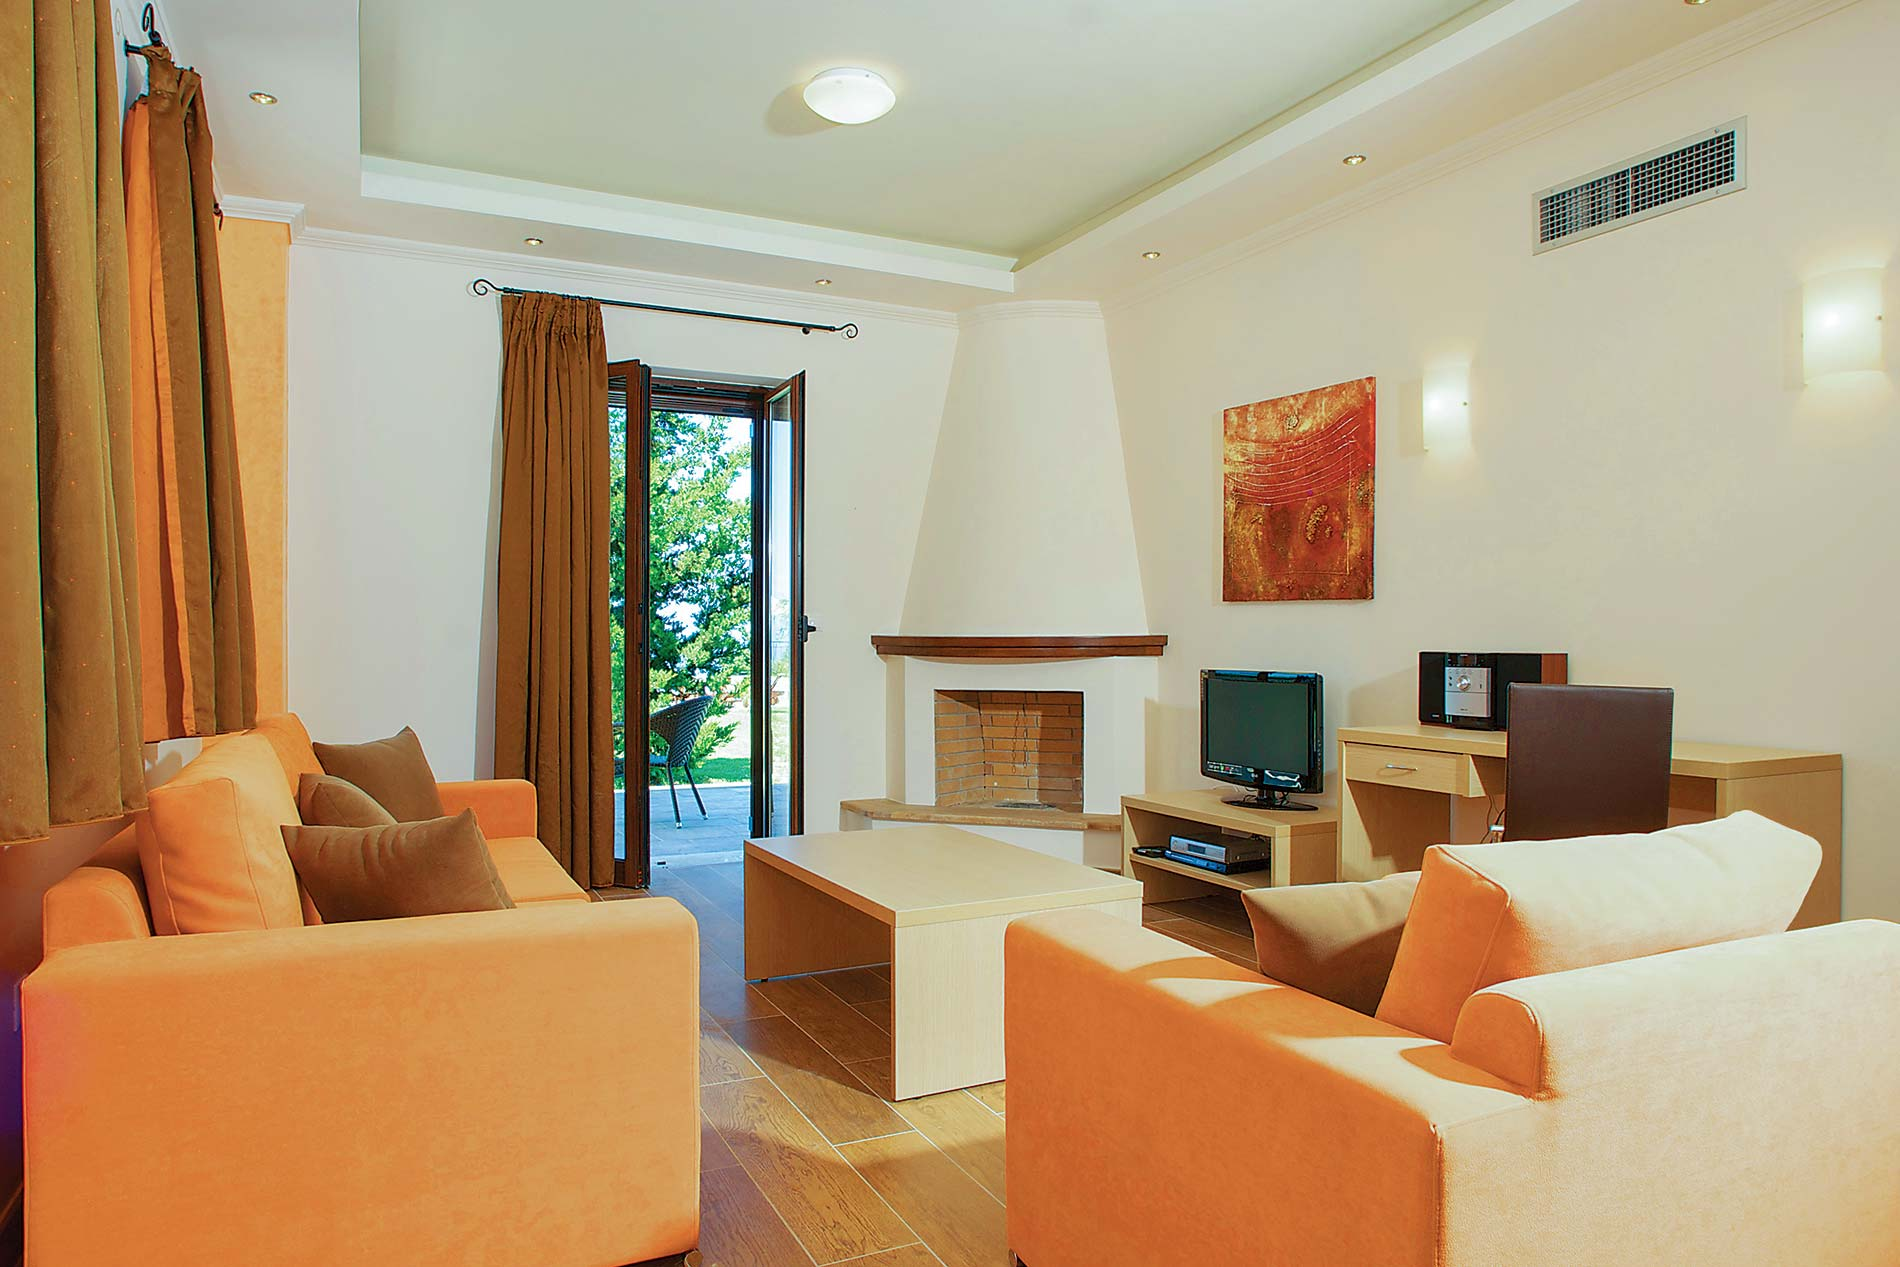 Villa Melia in Spanochori - sleeps 4 people